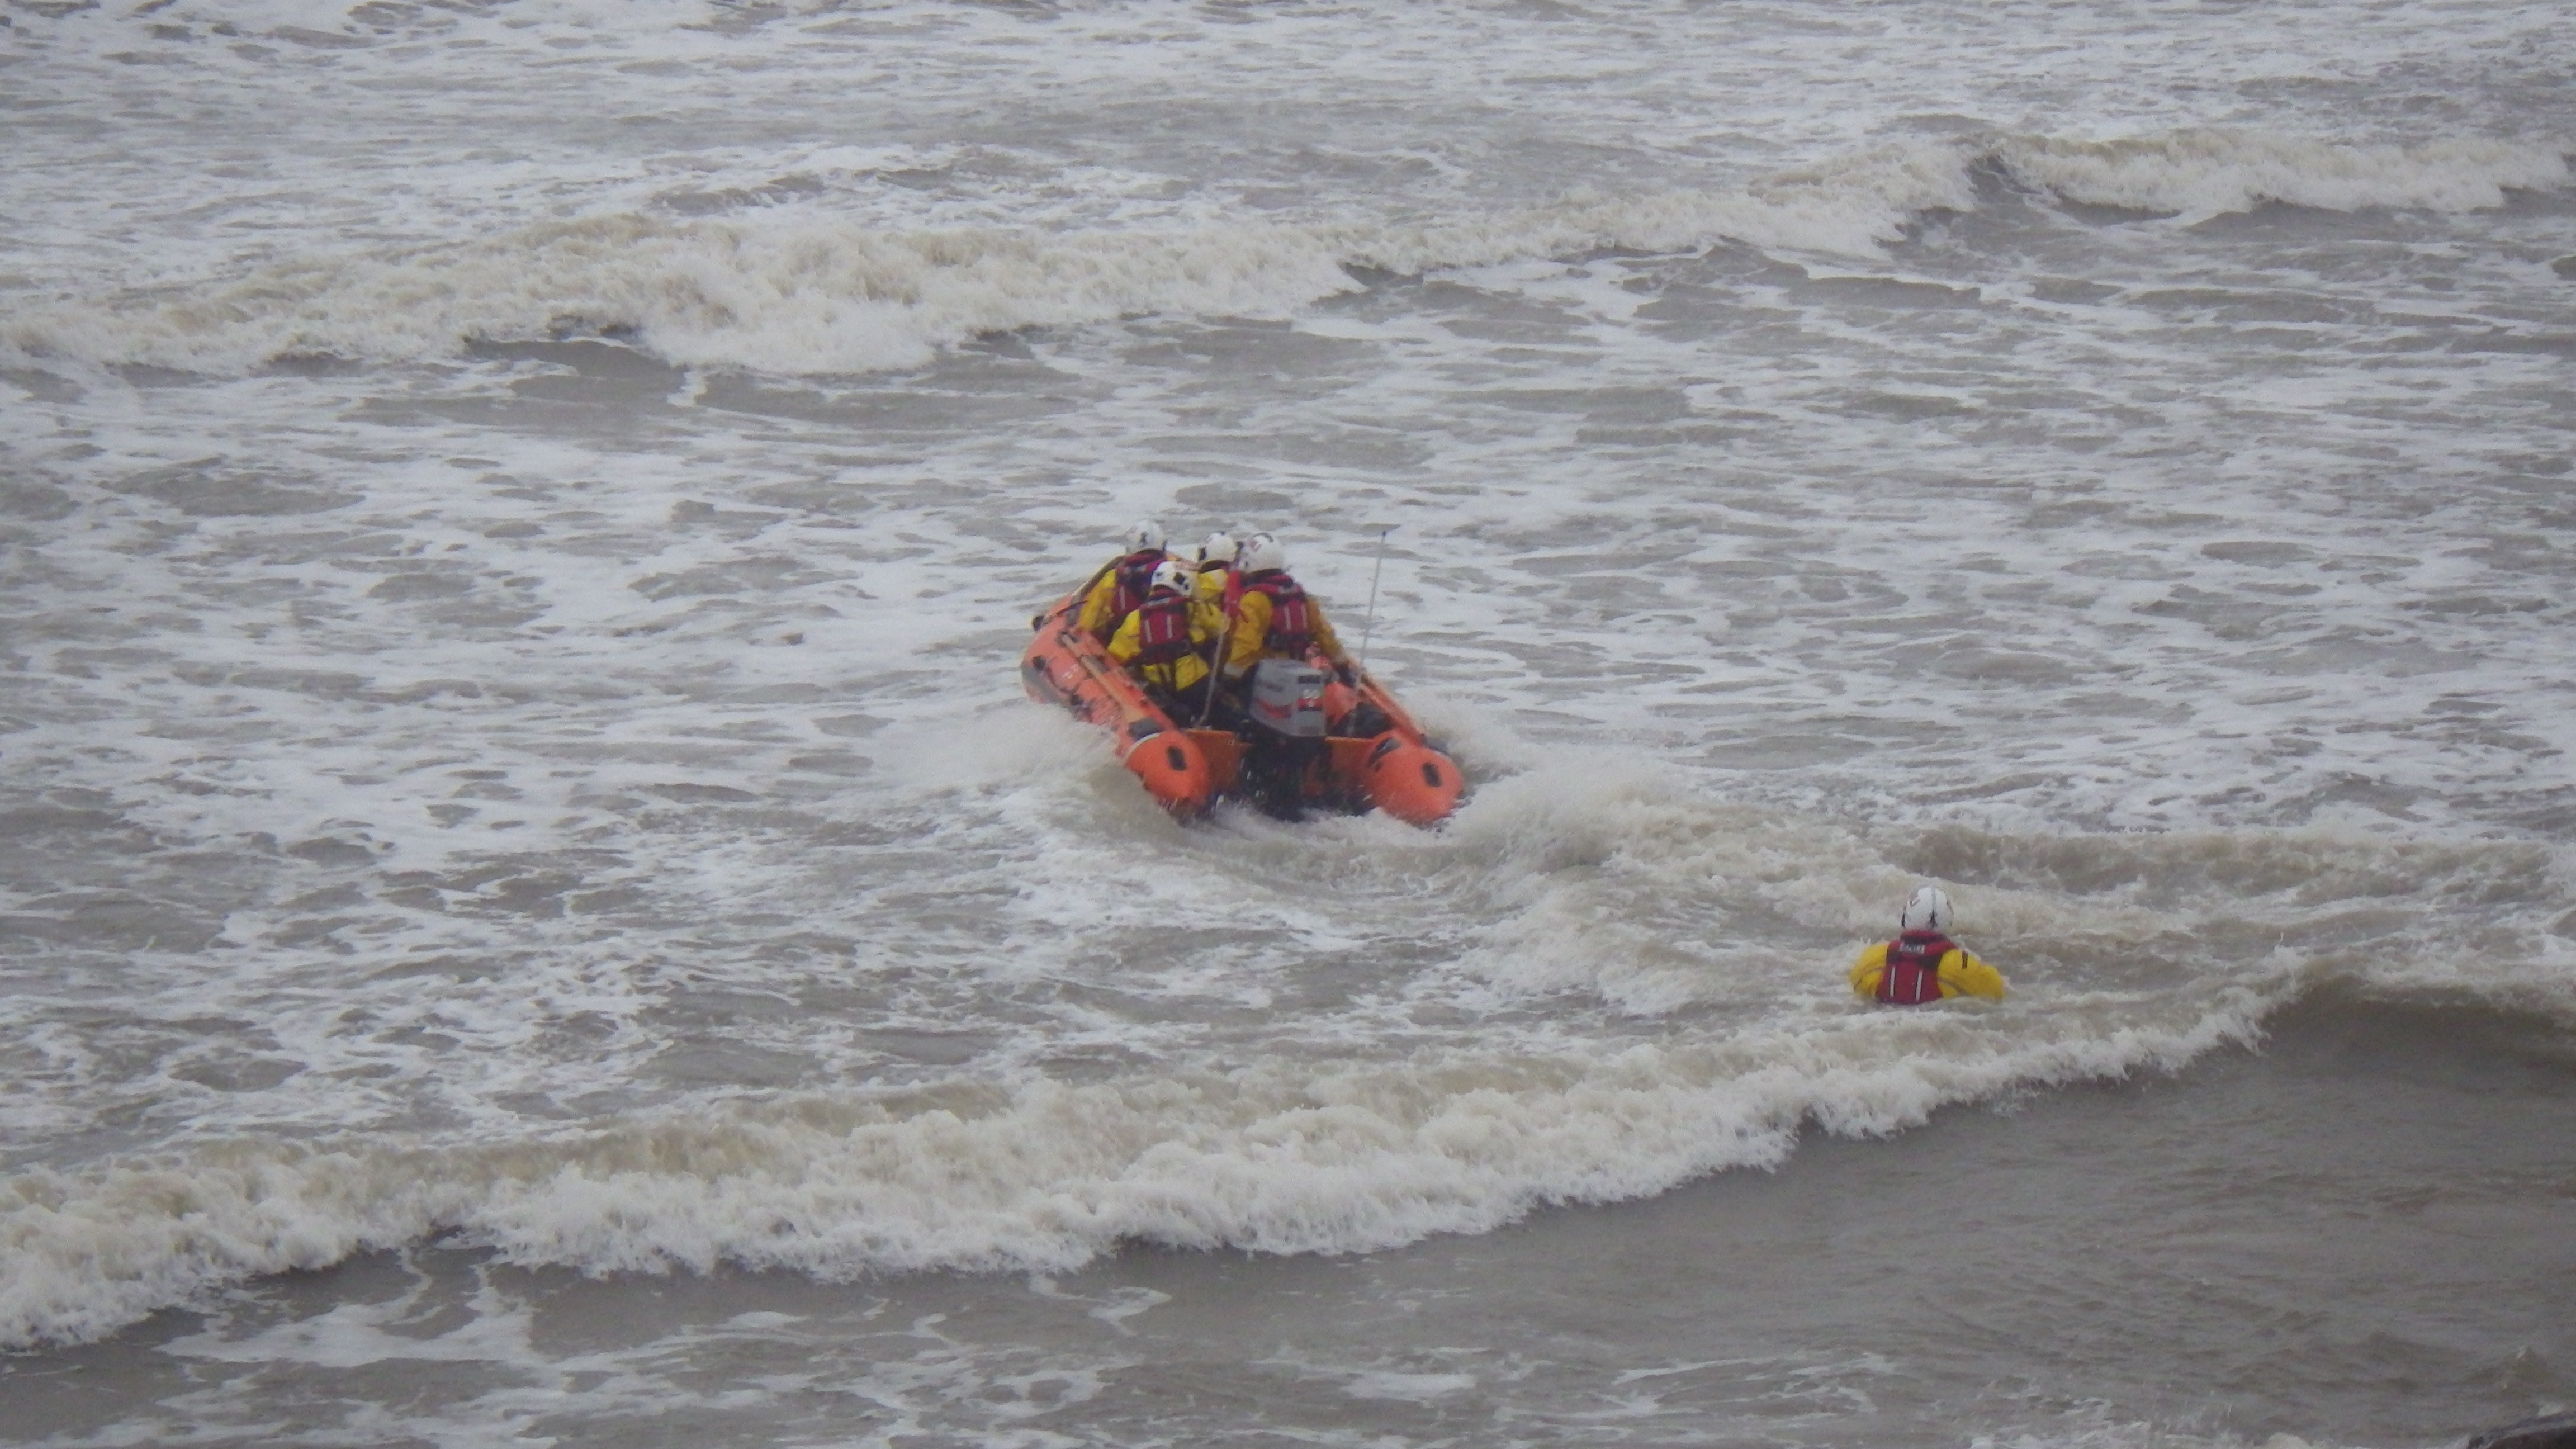 The lifeboat on its way to the casualty